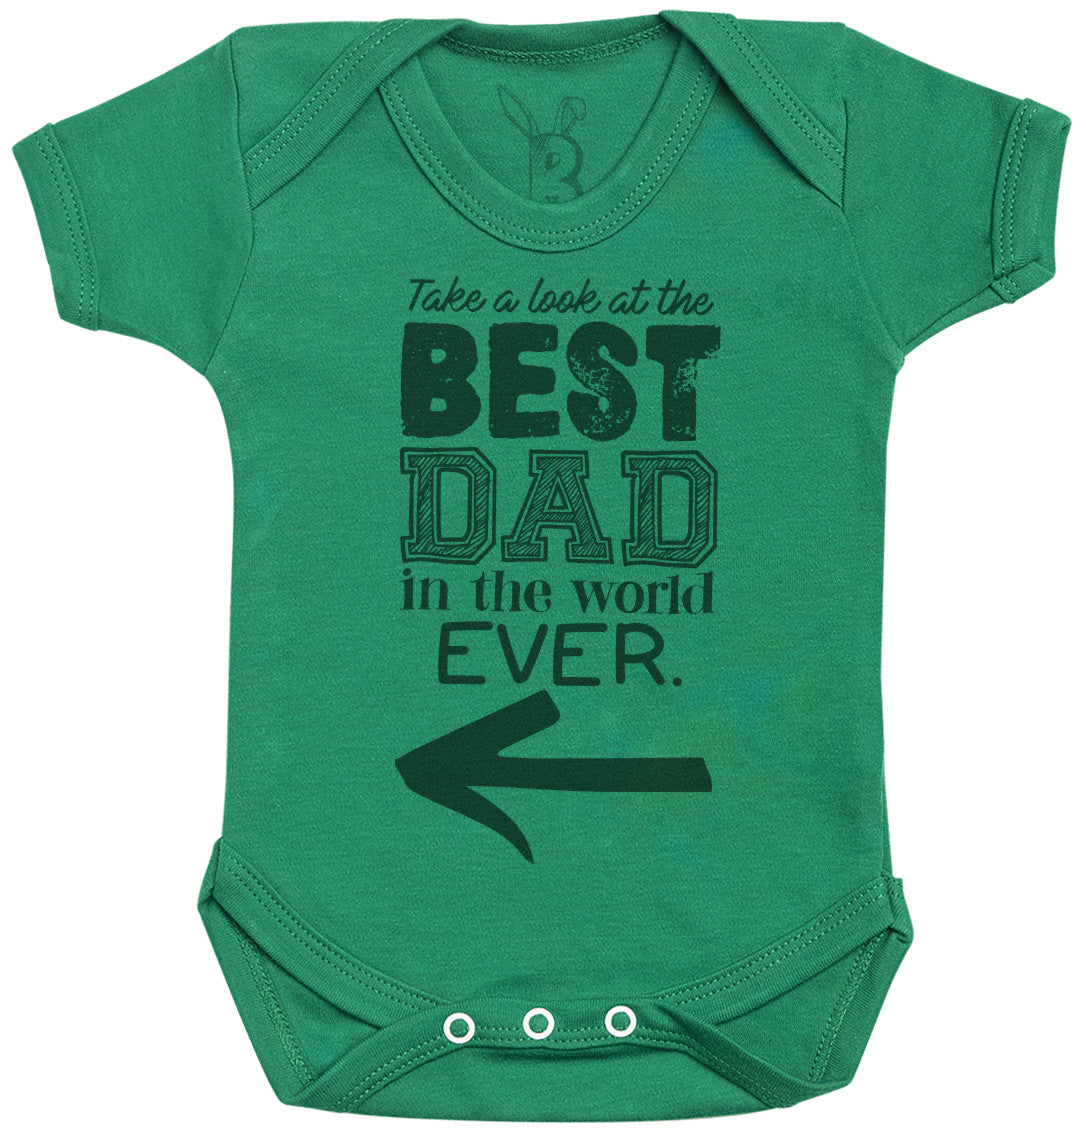 Best Dad Ever In The World Baby Bodysuit - Baby Gift